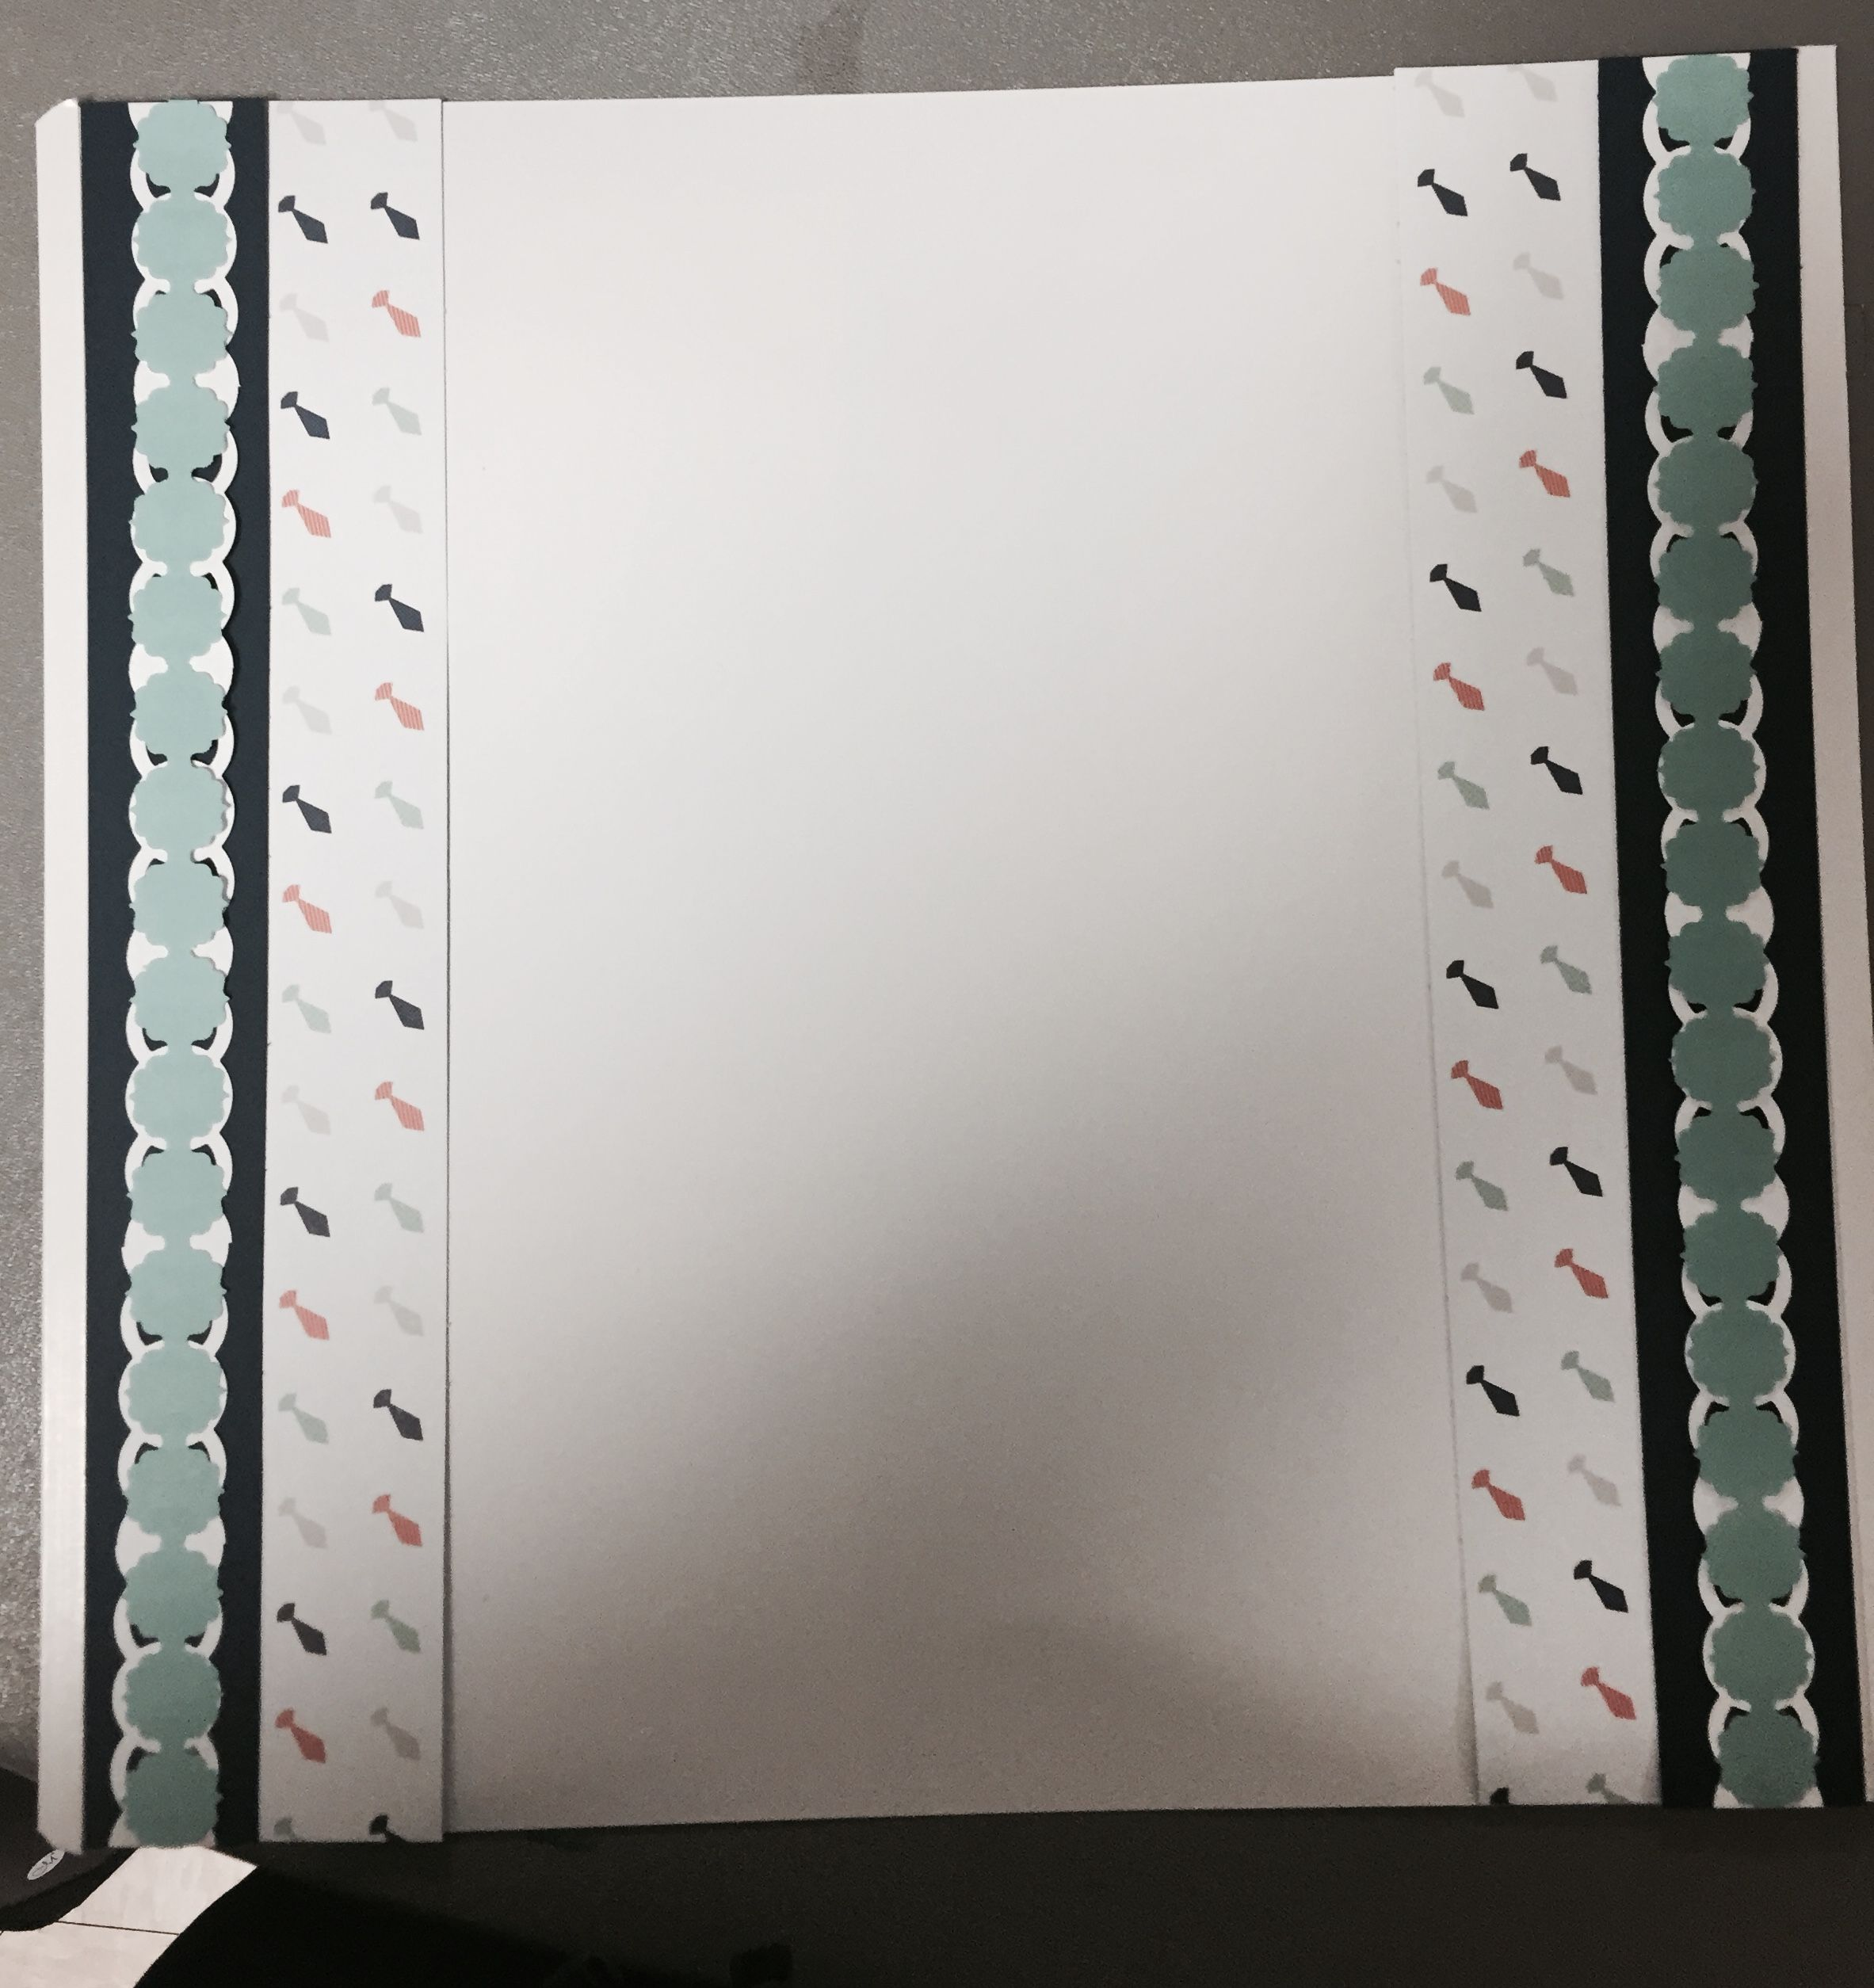 Scrapbook border I made using the Creative Memories Circle Weave Chain and Frame Chain border maker cartridges.